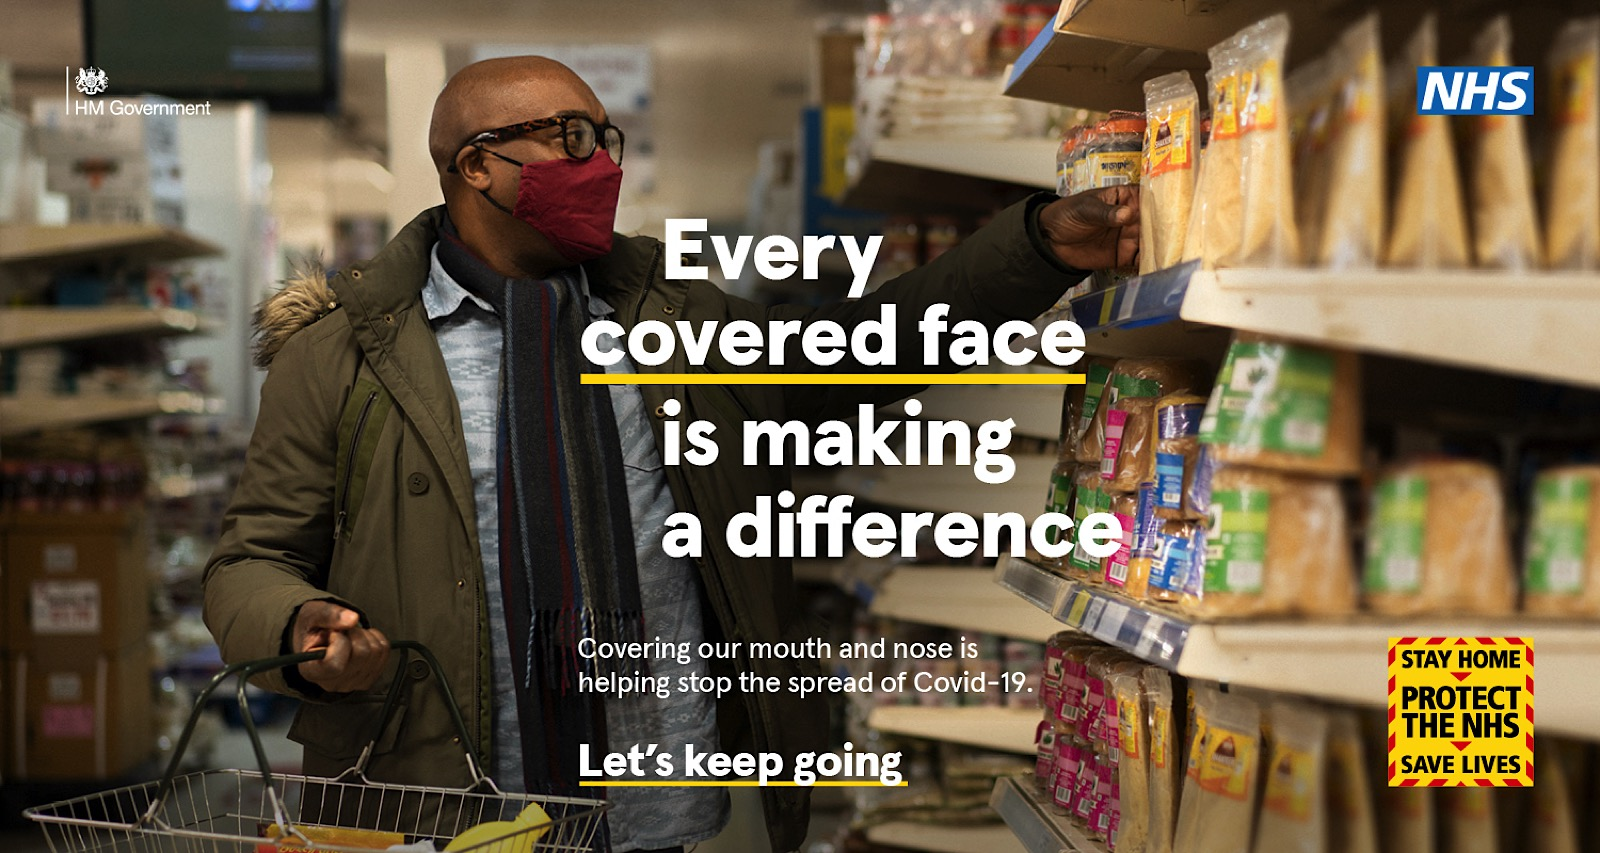 Campaign Image from Let's Keep Going NHS and UK government Covid-19 Campaign showing man in supermarket wearing a mask